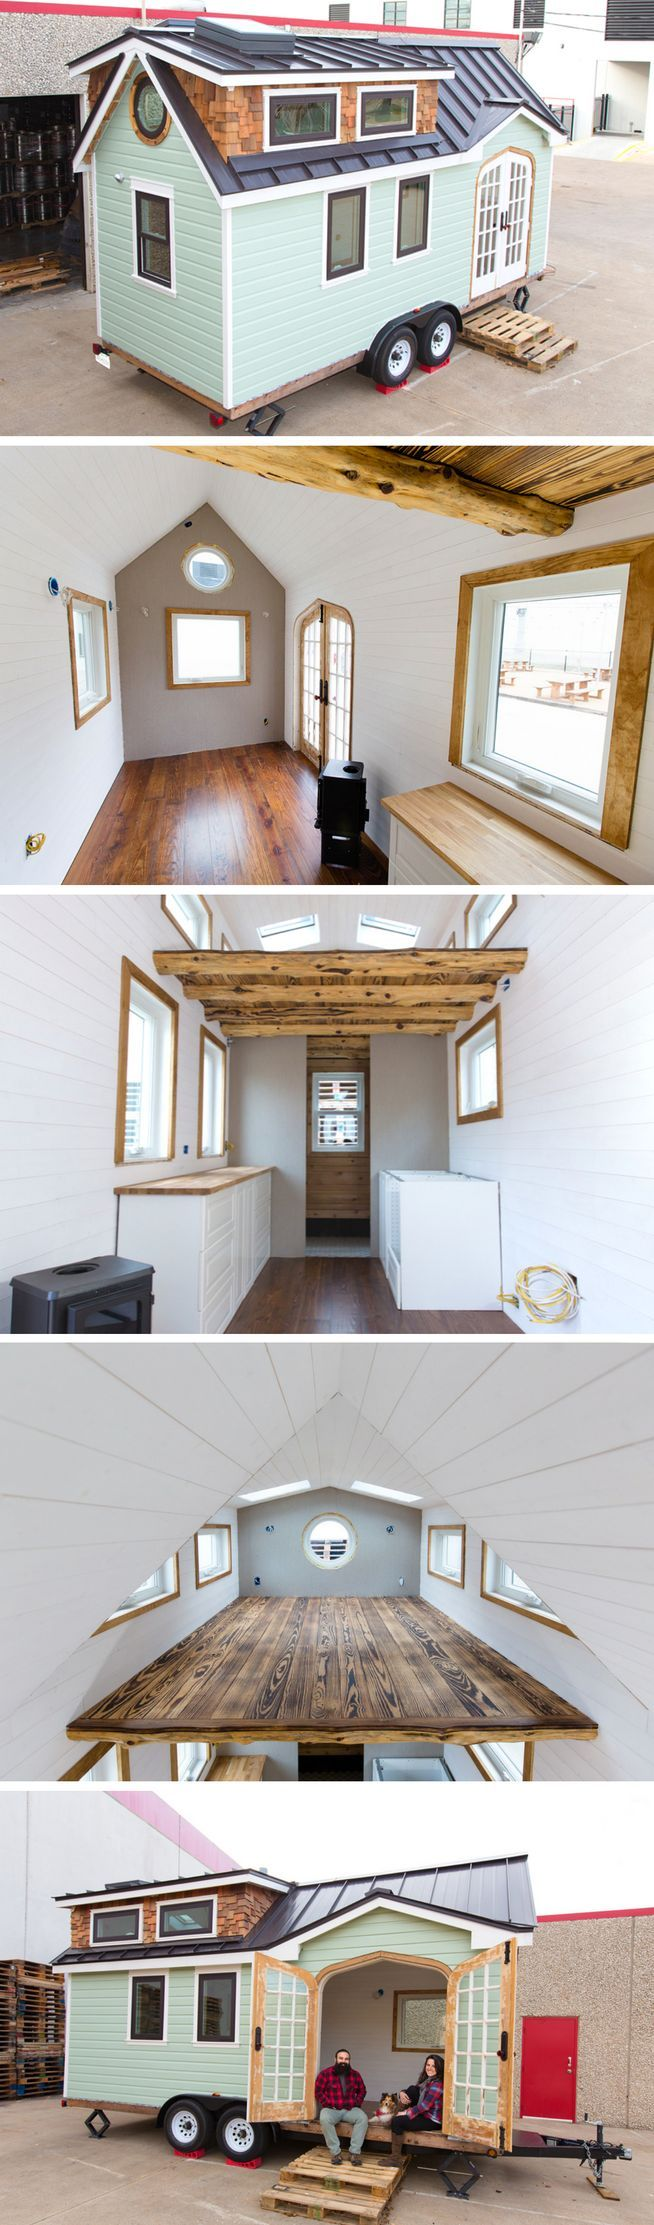 Brilliant 105 Impressive Tiny Houses That Maximize Function and Style https://decoratio.co/2017/03/105-impressive-tiny-houses-maximize-function-style/